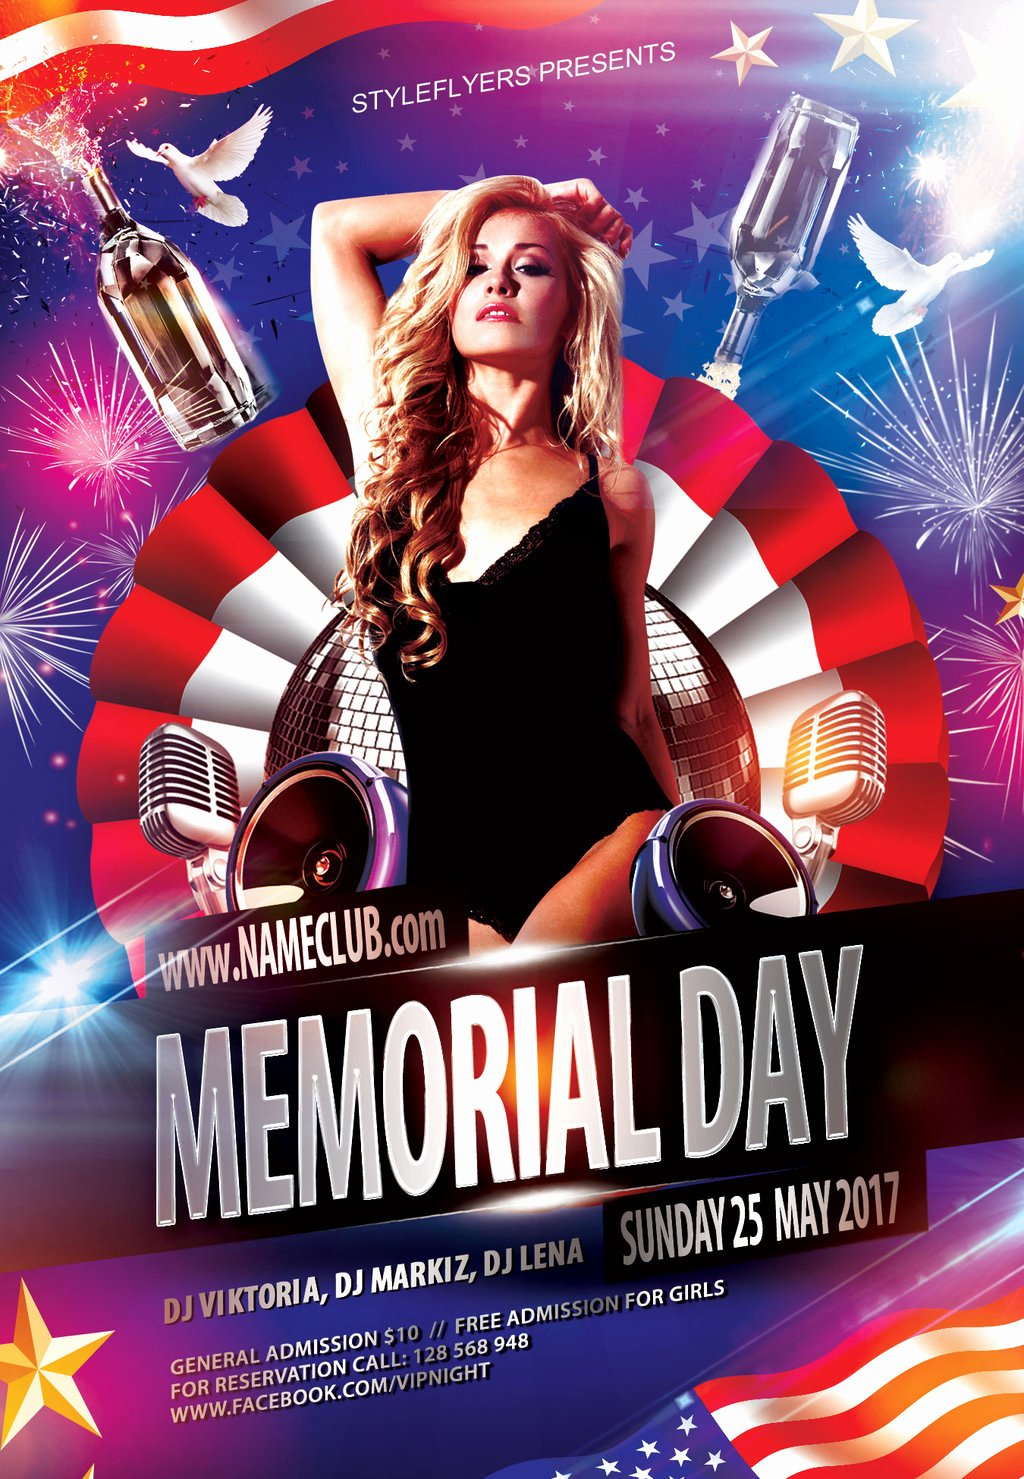 Memorial Day Flyer Template Free New Memorial Day Flyer by Styleflyers On Deviantart